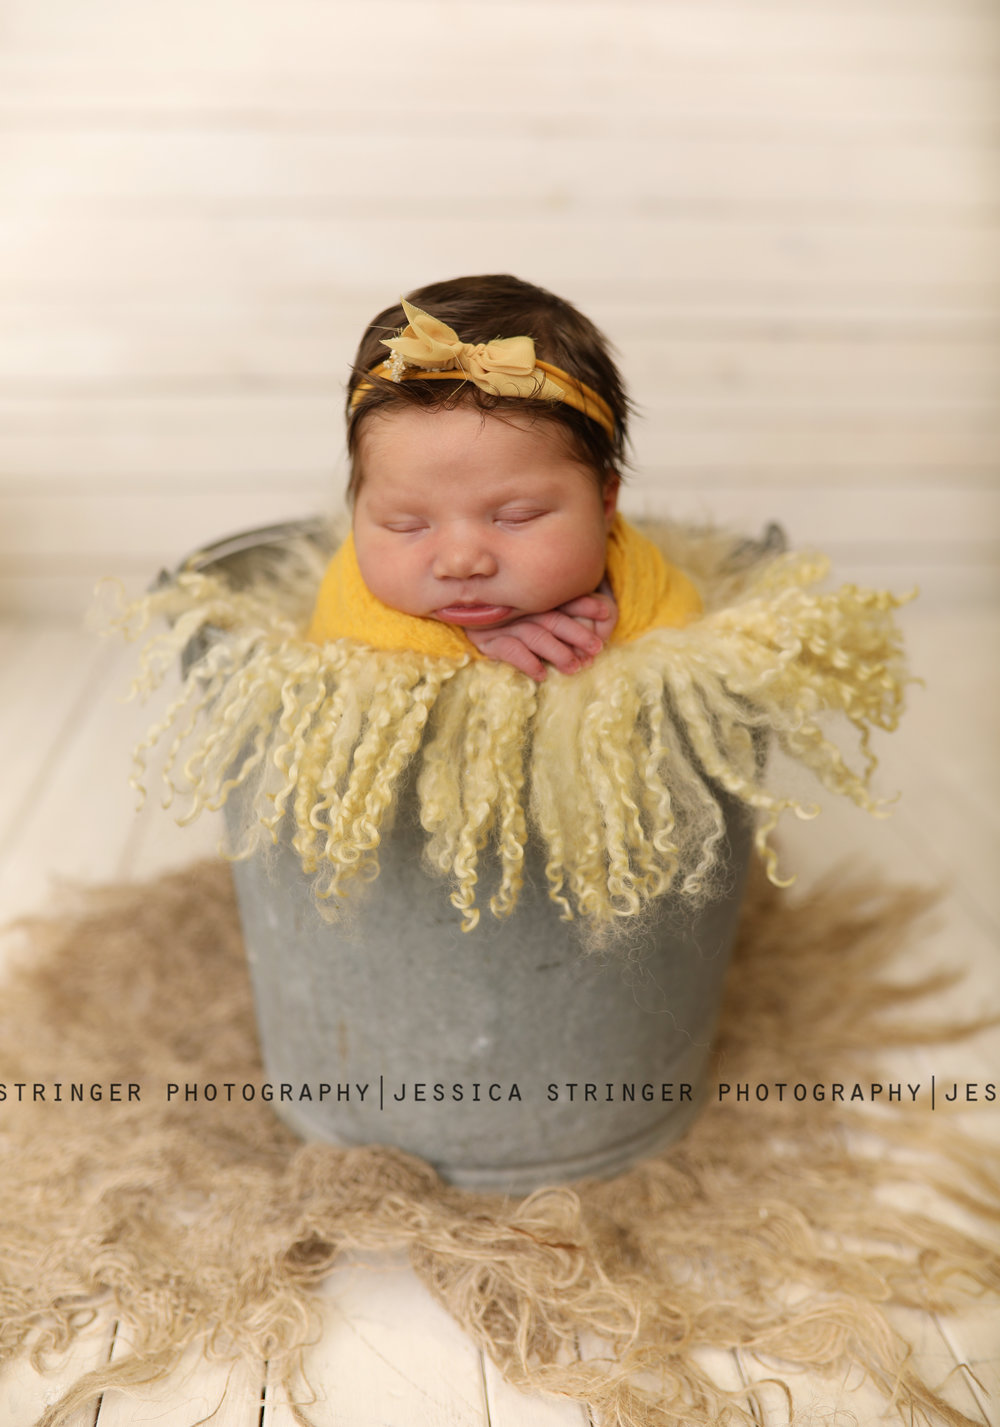 rochester ny newborn baby cake smash first birthday photographer